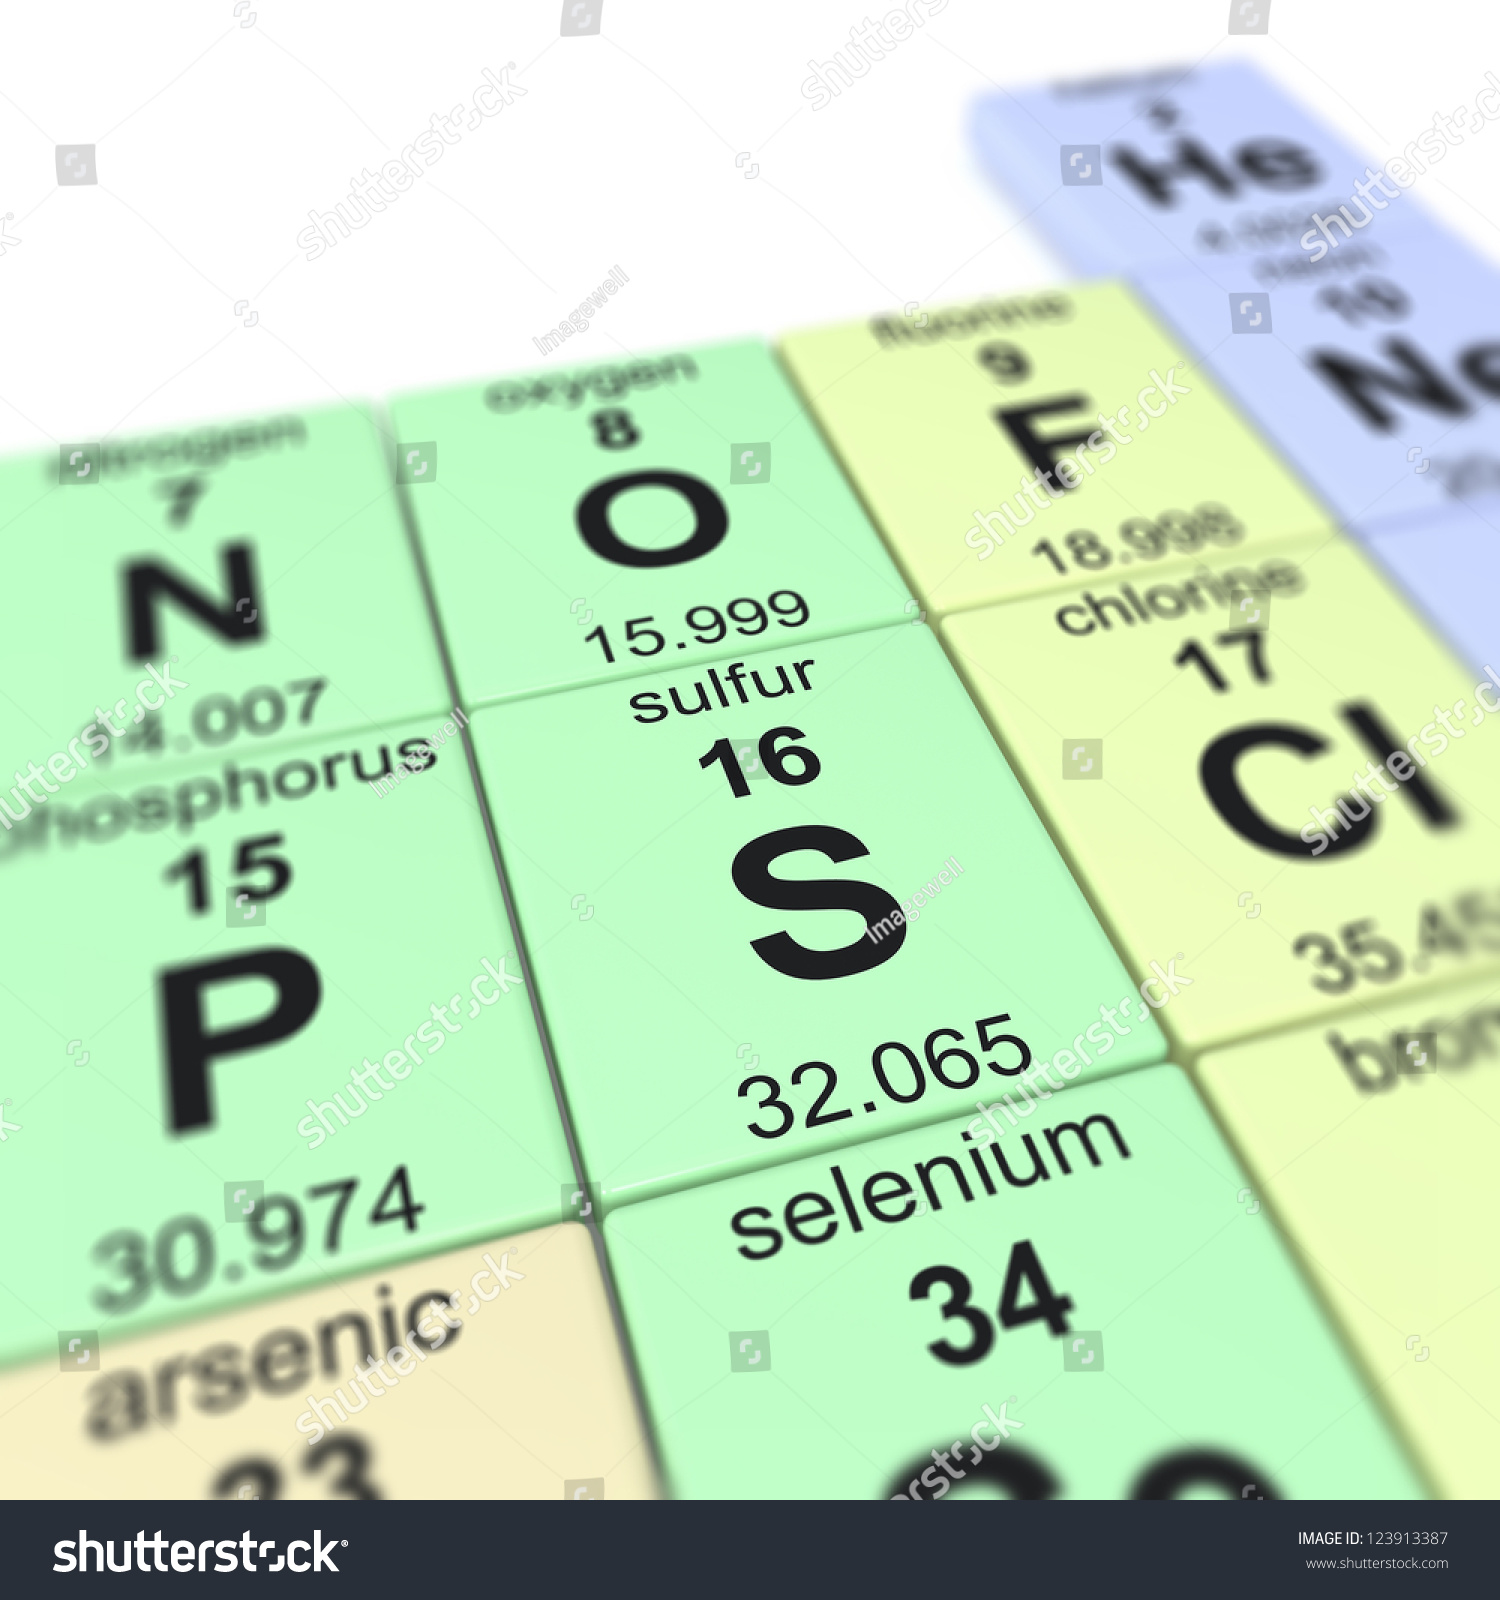 15 on periodic table images periodic table images sulfur on periodic table images periodic table images sulfur on periodic table image collections periodic table gamestrikefo Image collections